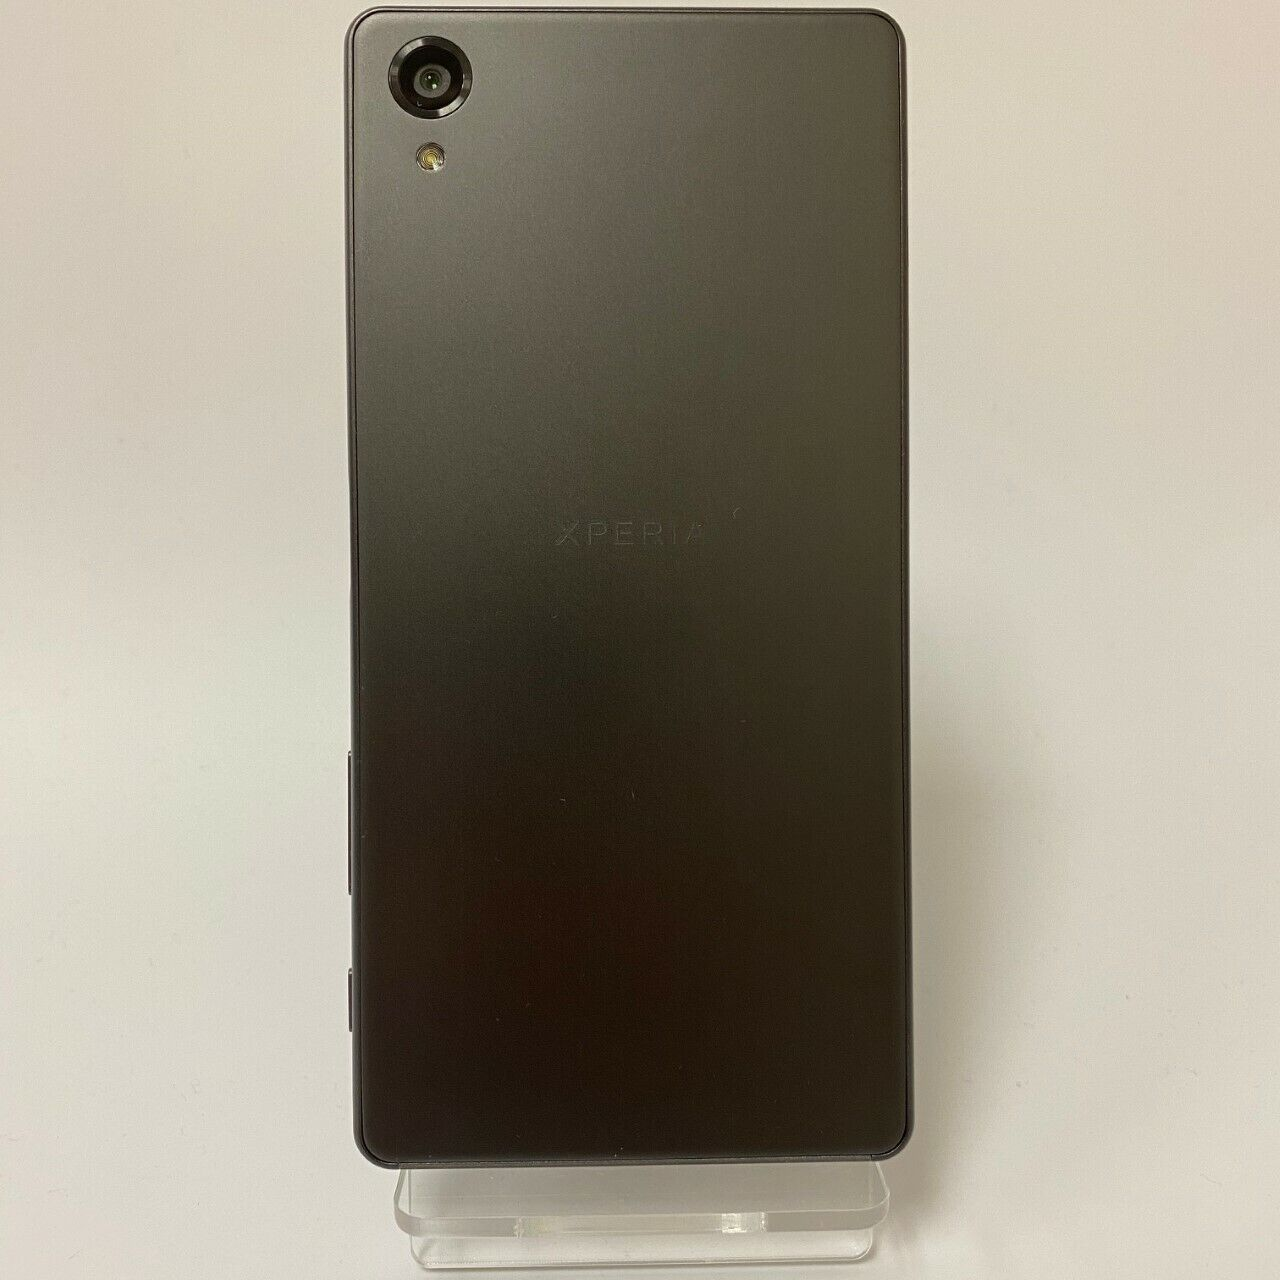 Android Phone - SONY XPERIA X 32GB - Grey / White - Unlocked - Smartphone Mobile Phone Android